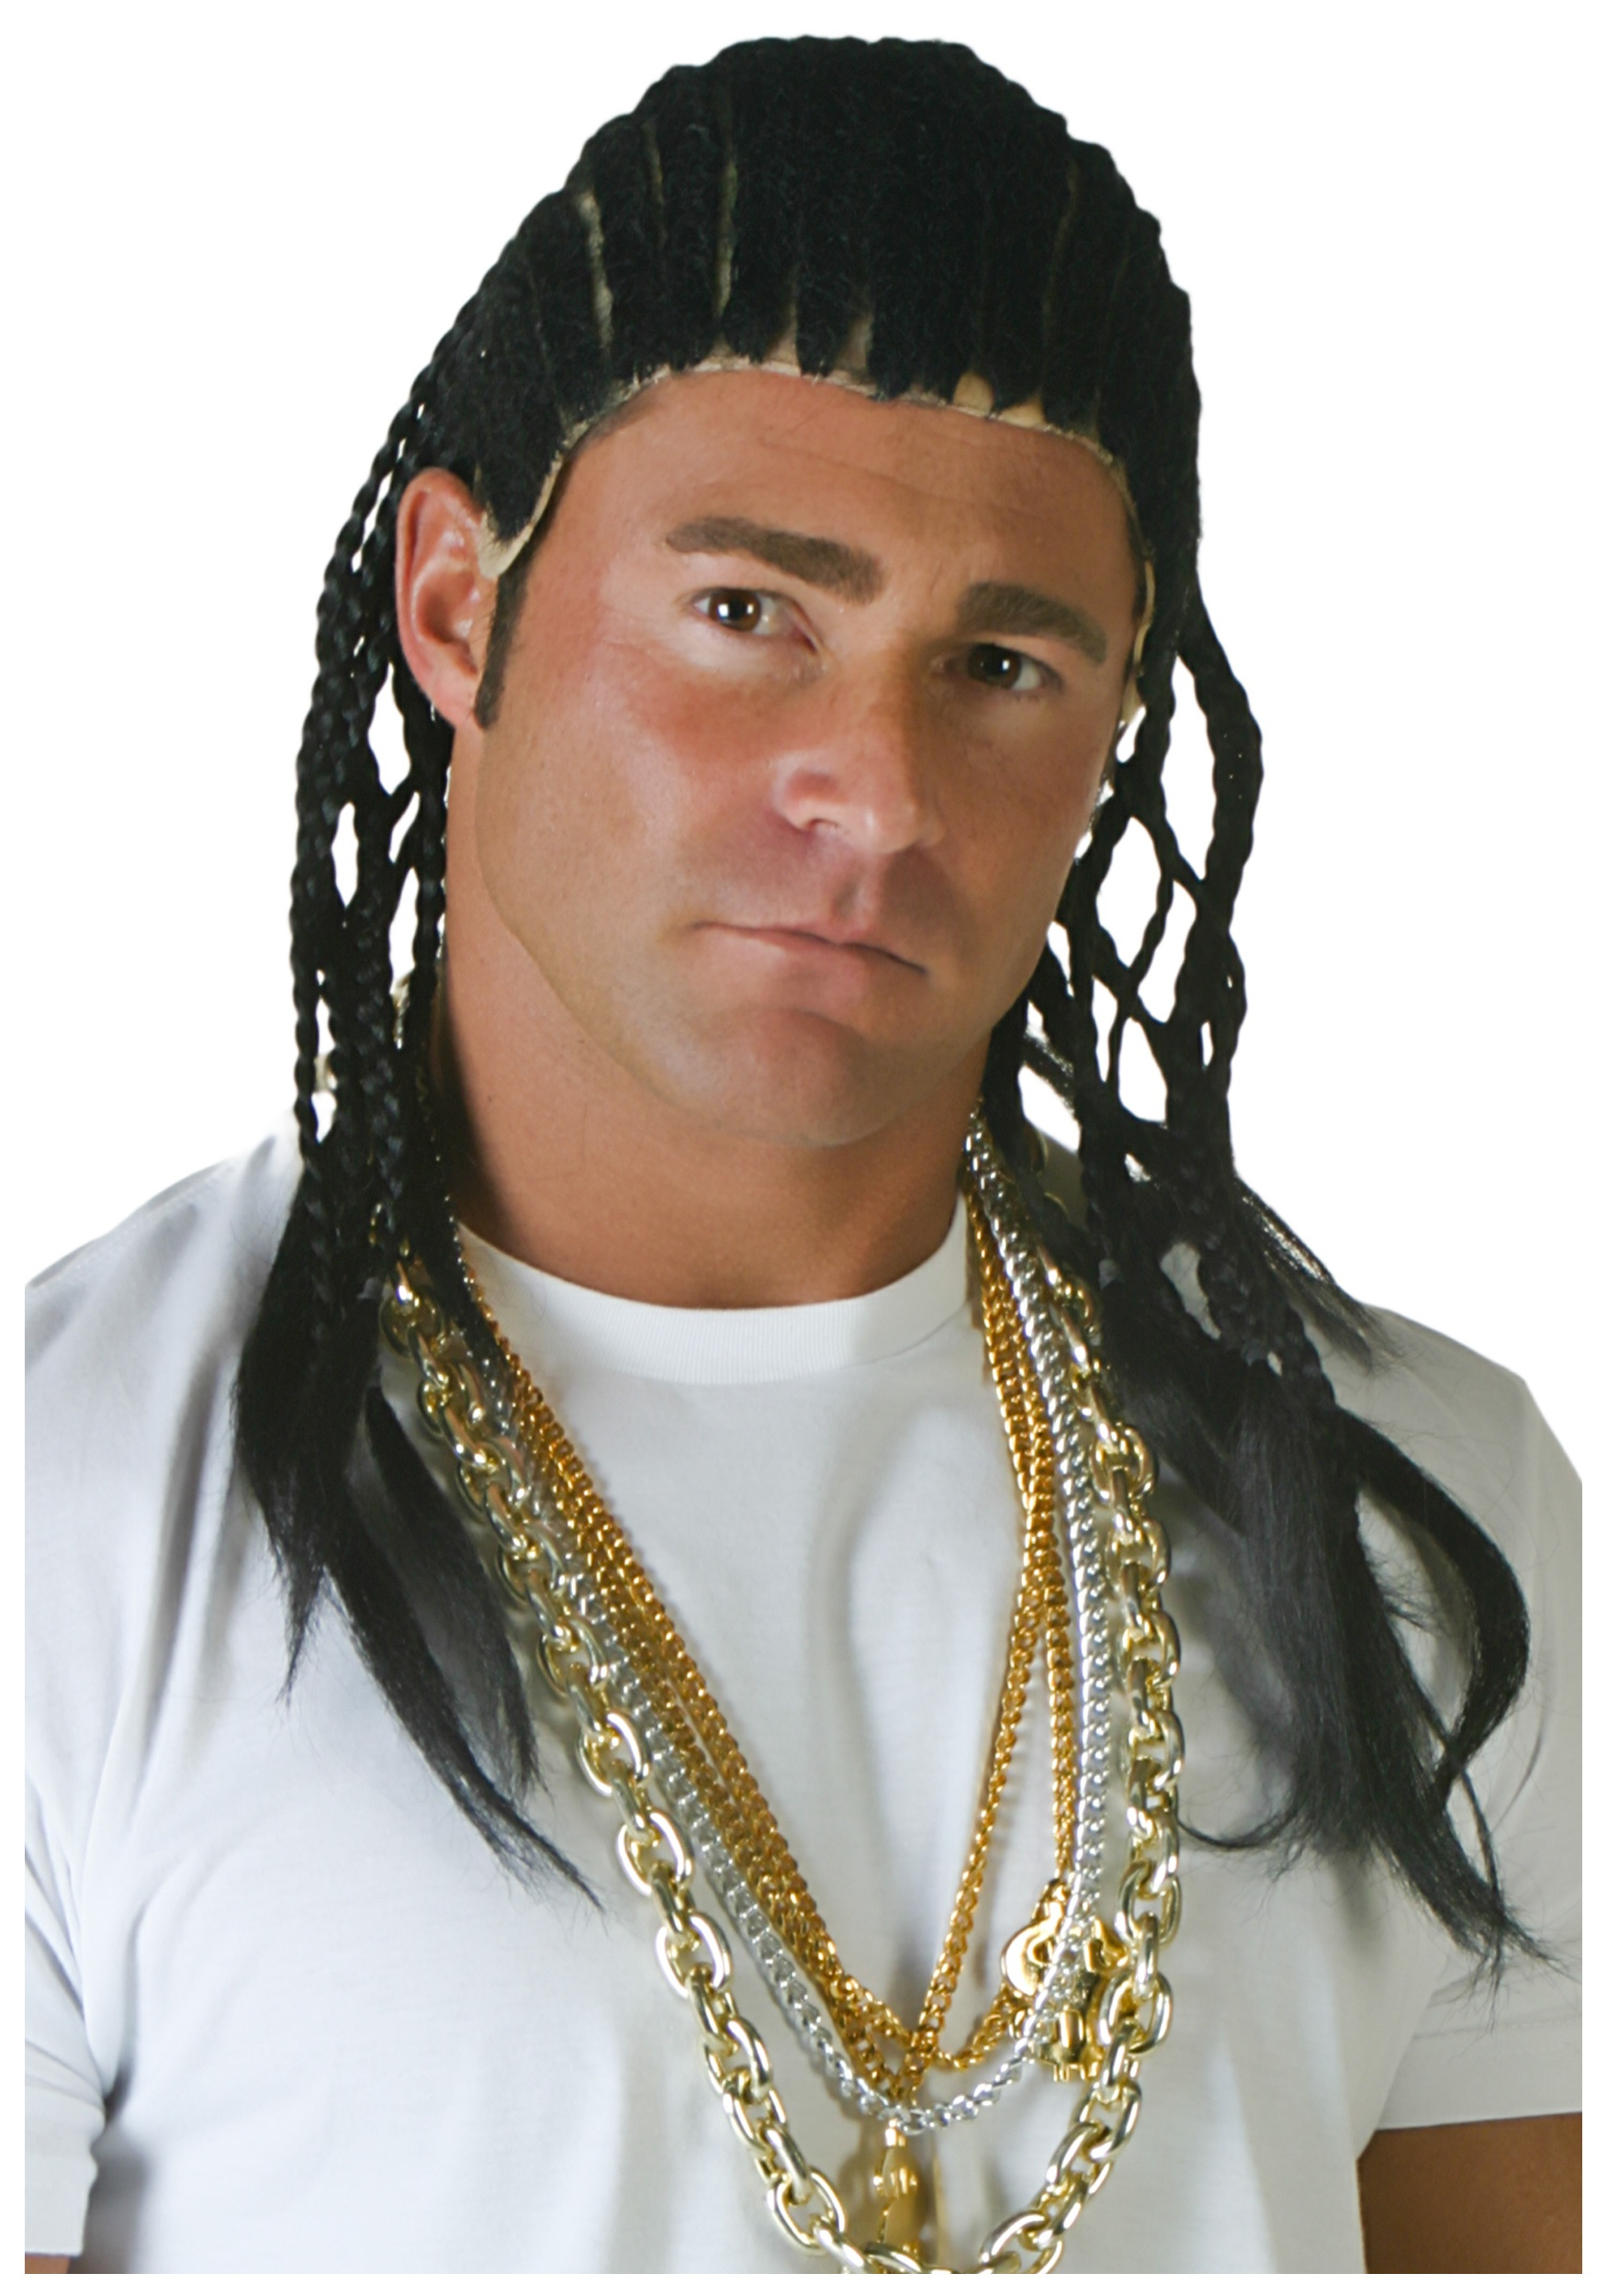 Recent Gold Toned Skull Cap Braided Hairstyles With Corn Row Wig (View 18 of 20)